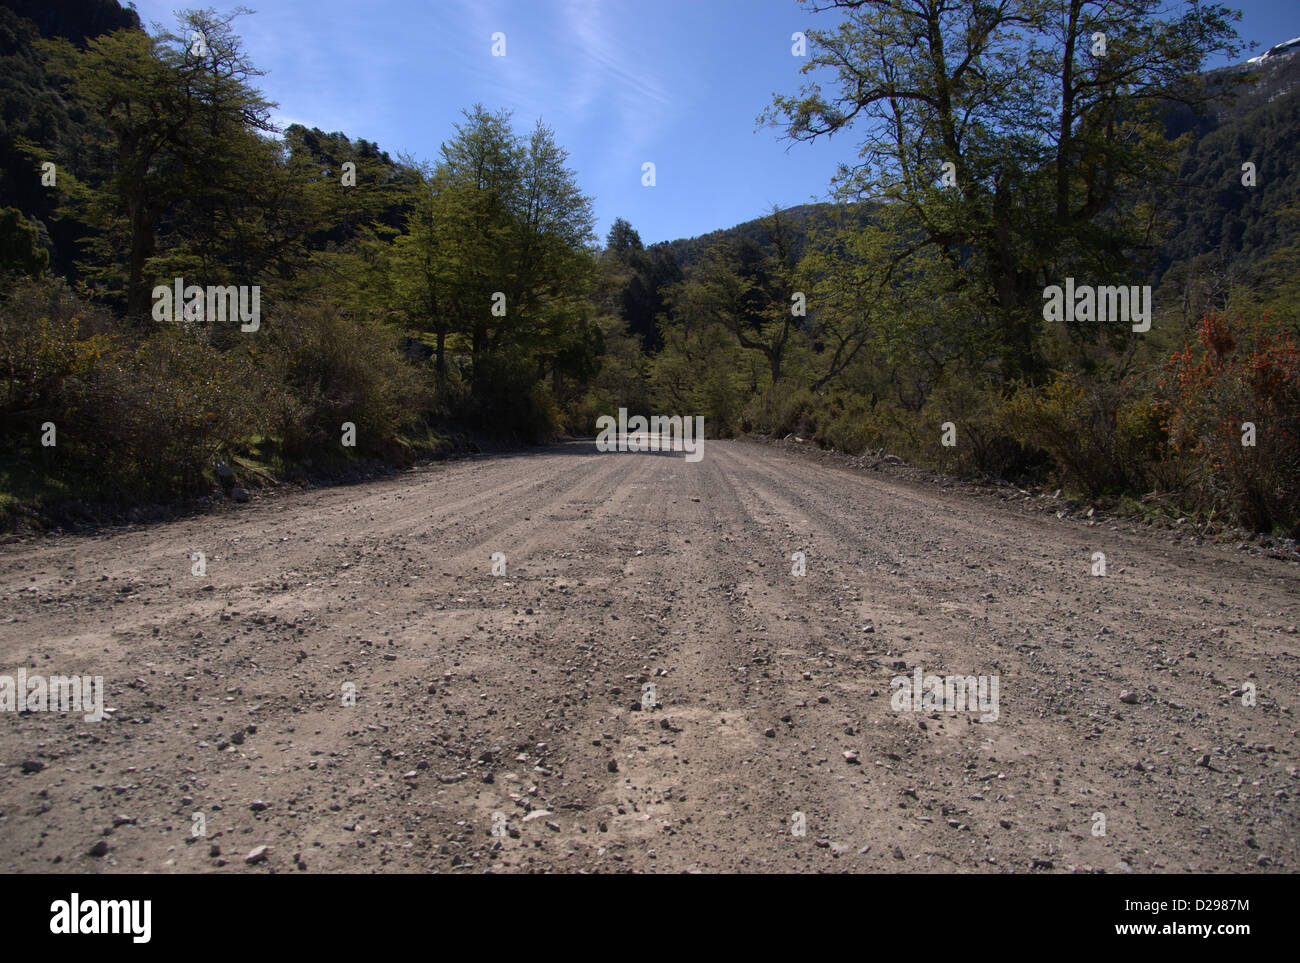 Roads - Stock Image